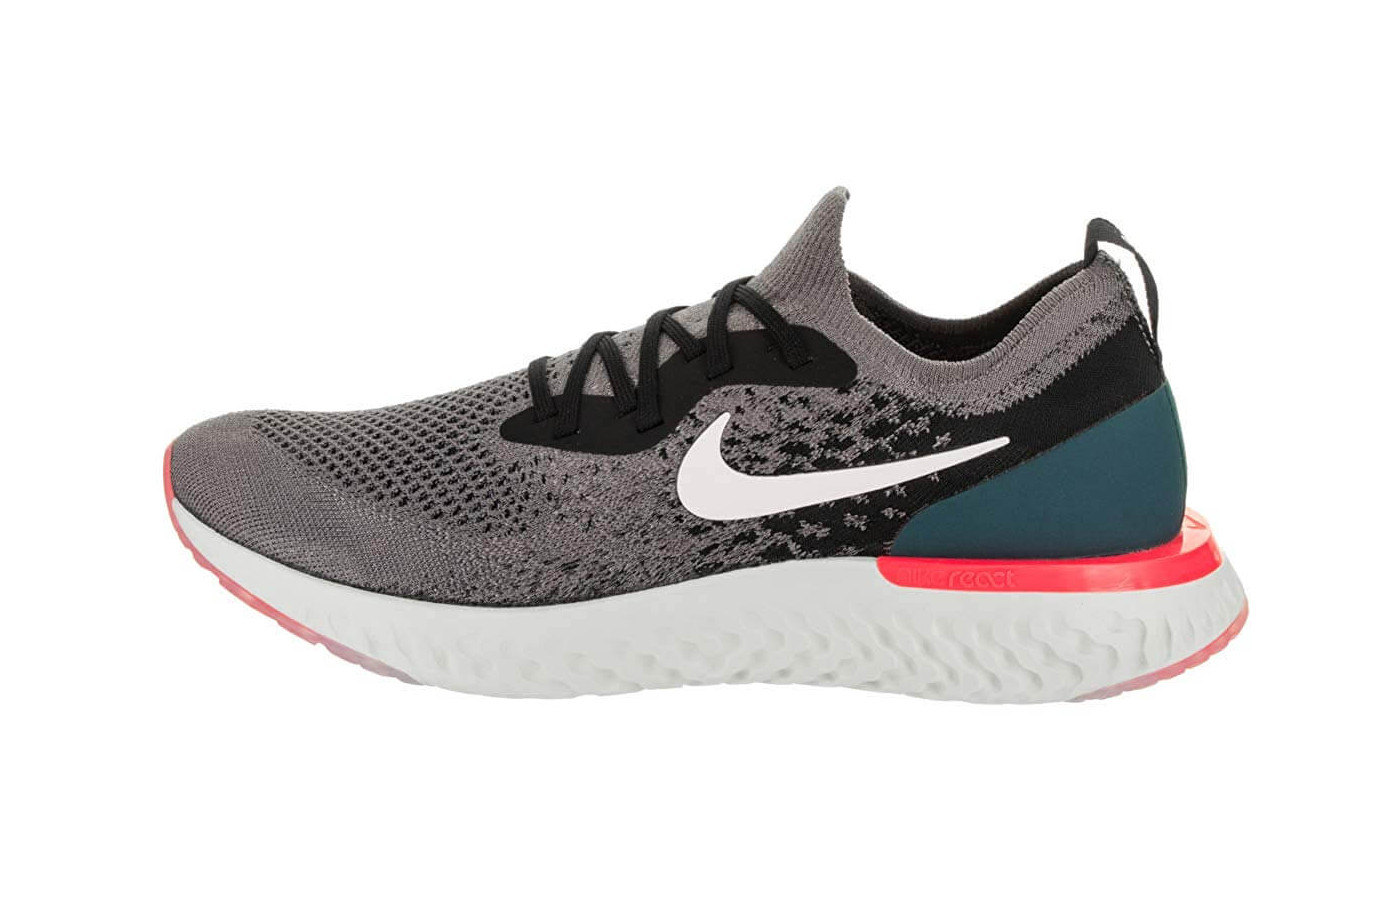 4dc4e7924490 Nike Epic React Flyknit - To Buy or Not in Apr 2019